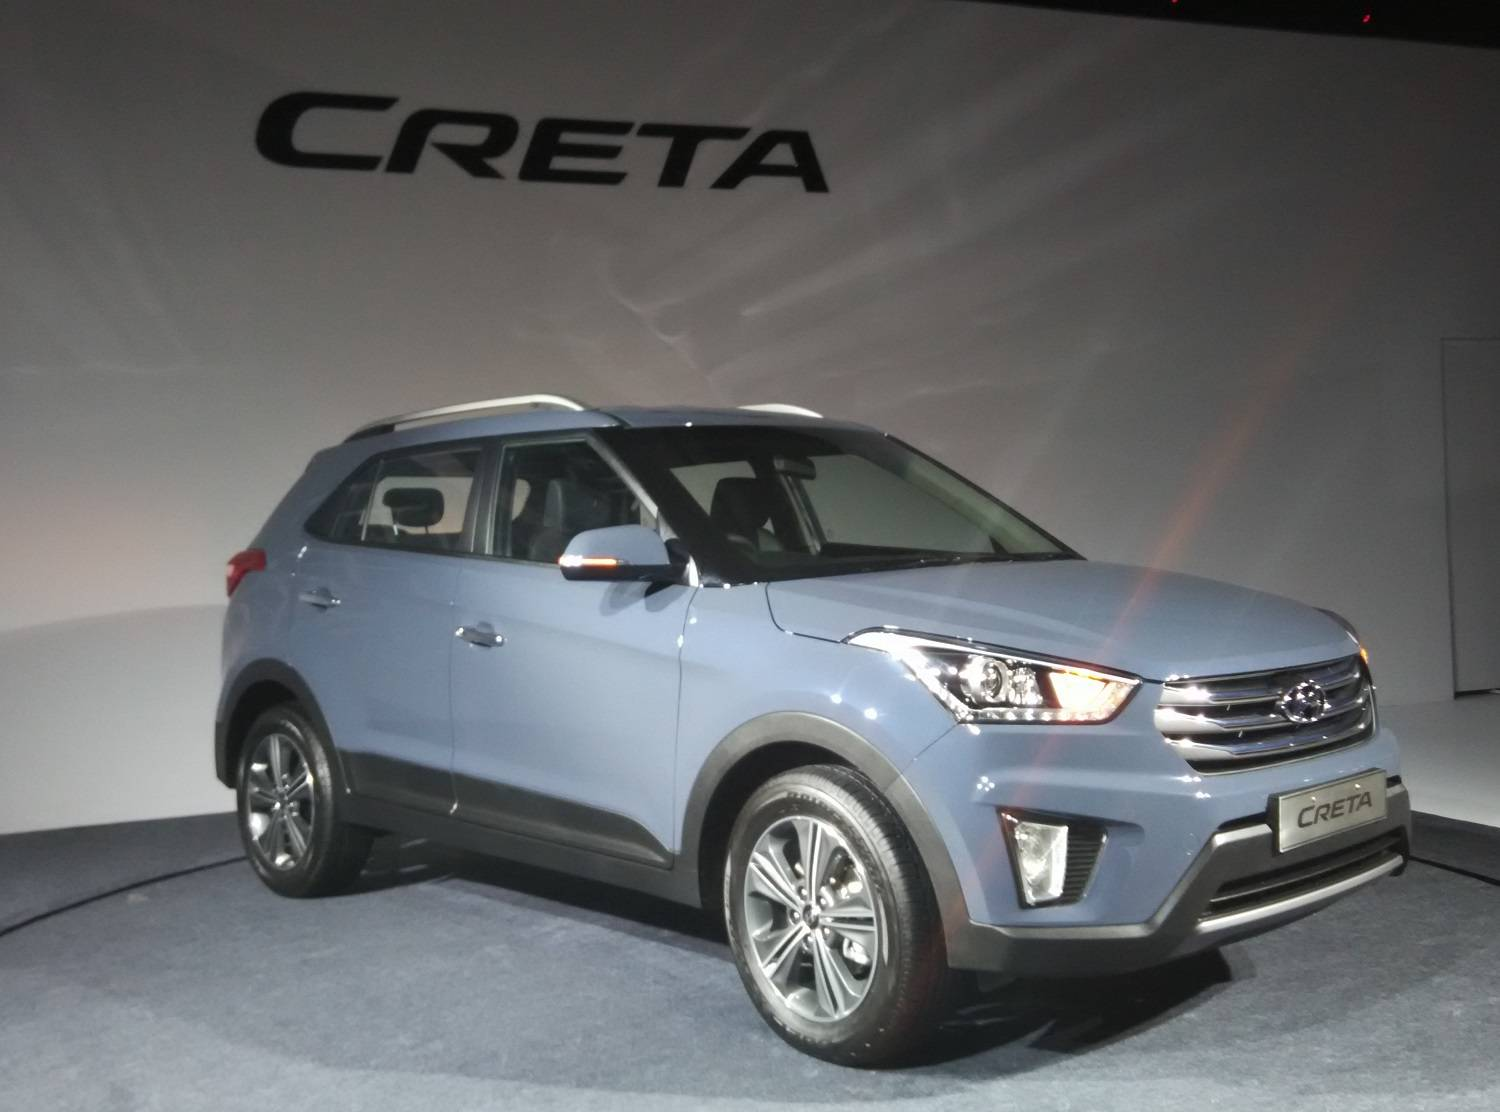 new car launches south africaMade in India Hyundai Creta woos Middle East Africa Auto News